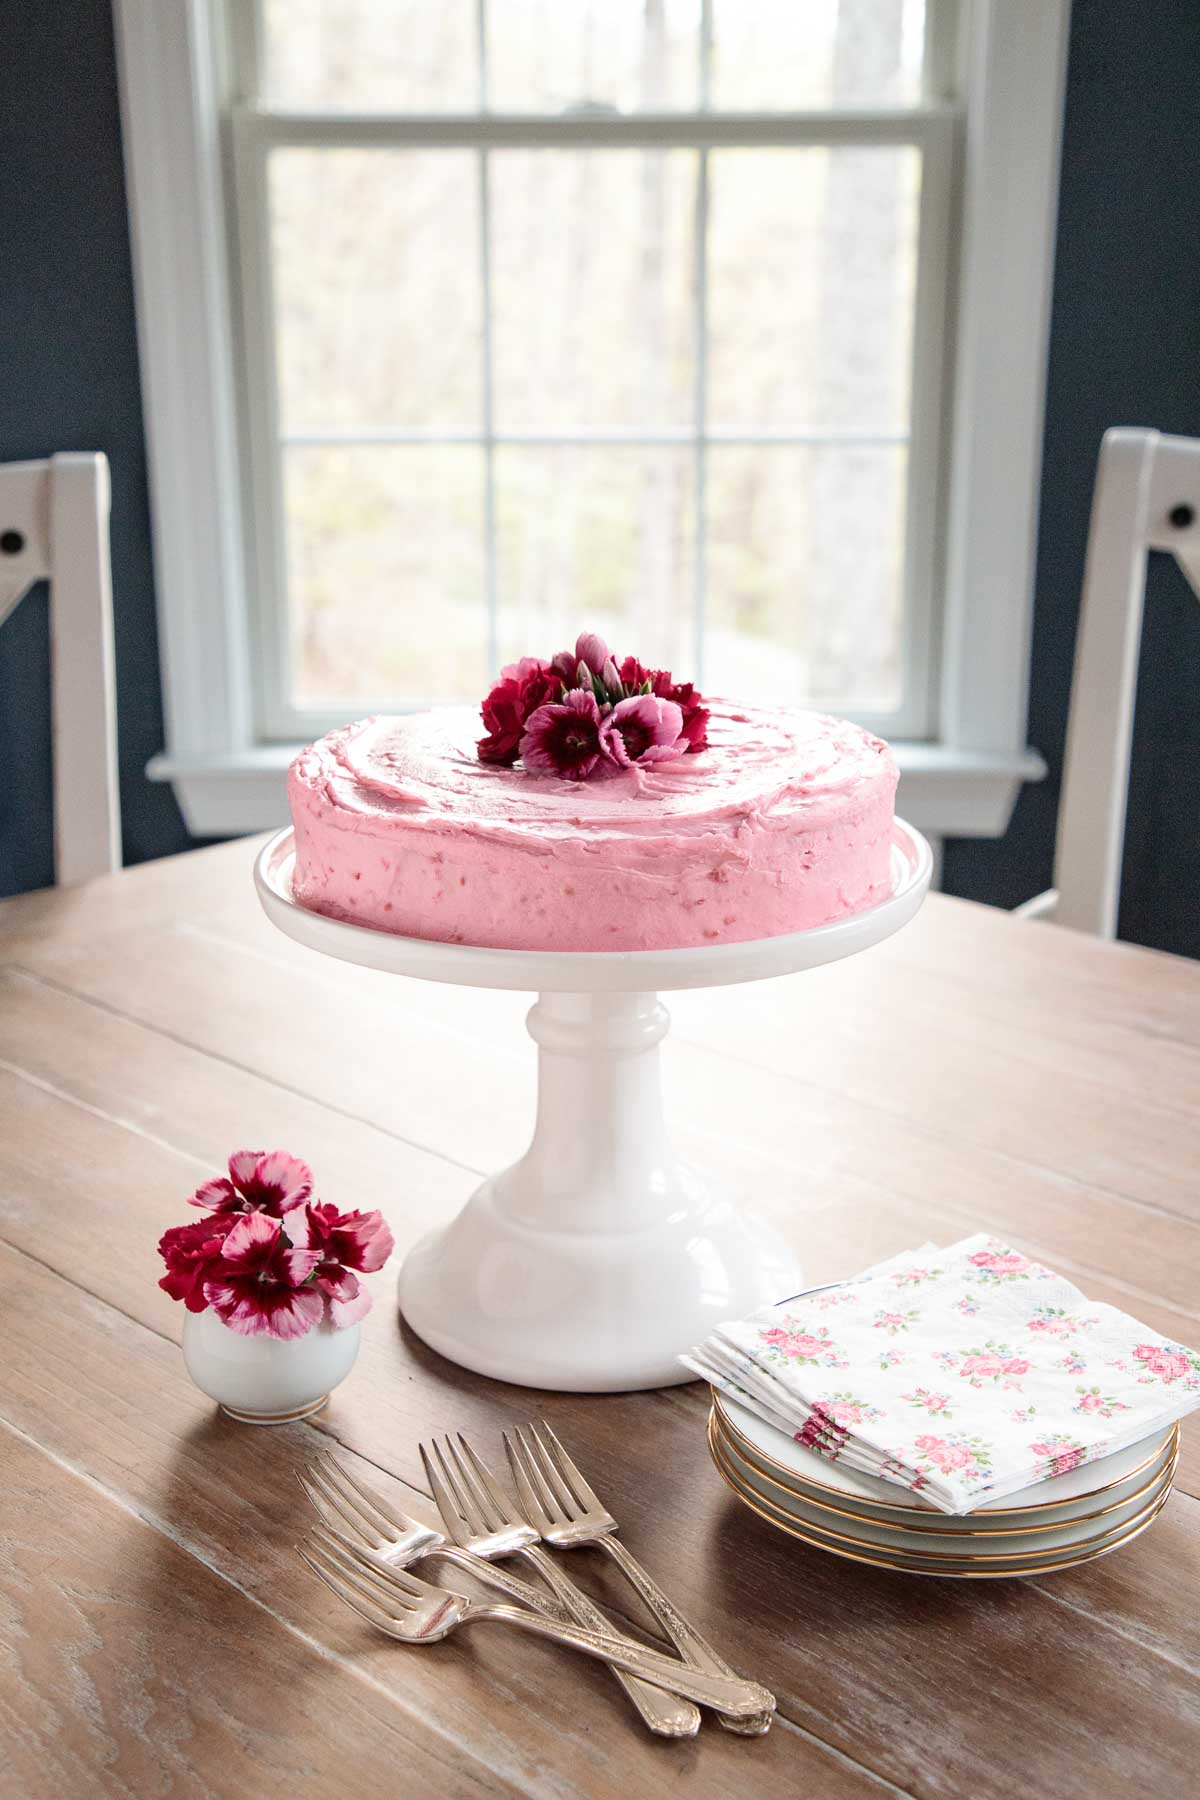 Long photo of a One-Bowl Buttermilk Cake with Raspberry Buttercream on a dining room table with a window and chairs in the background.